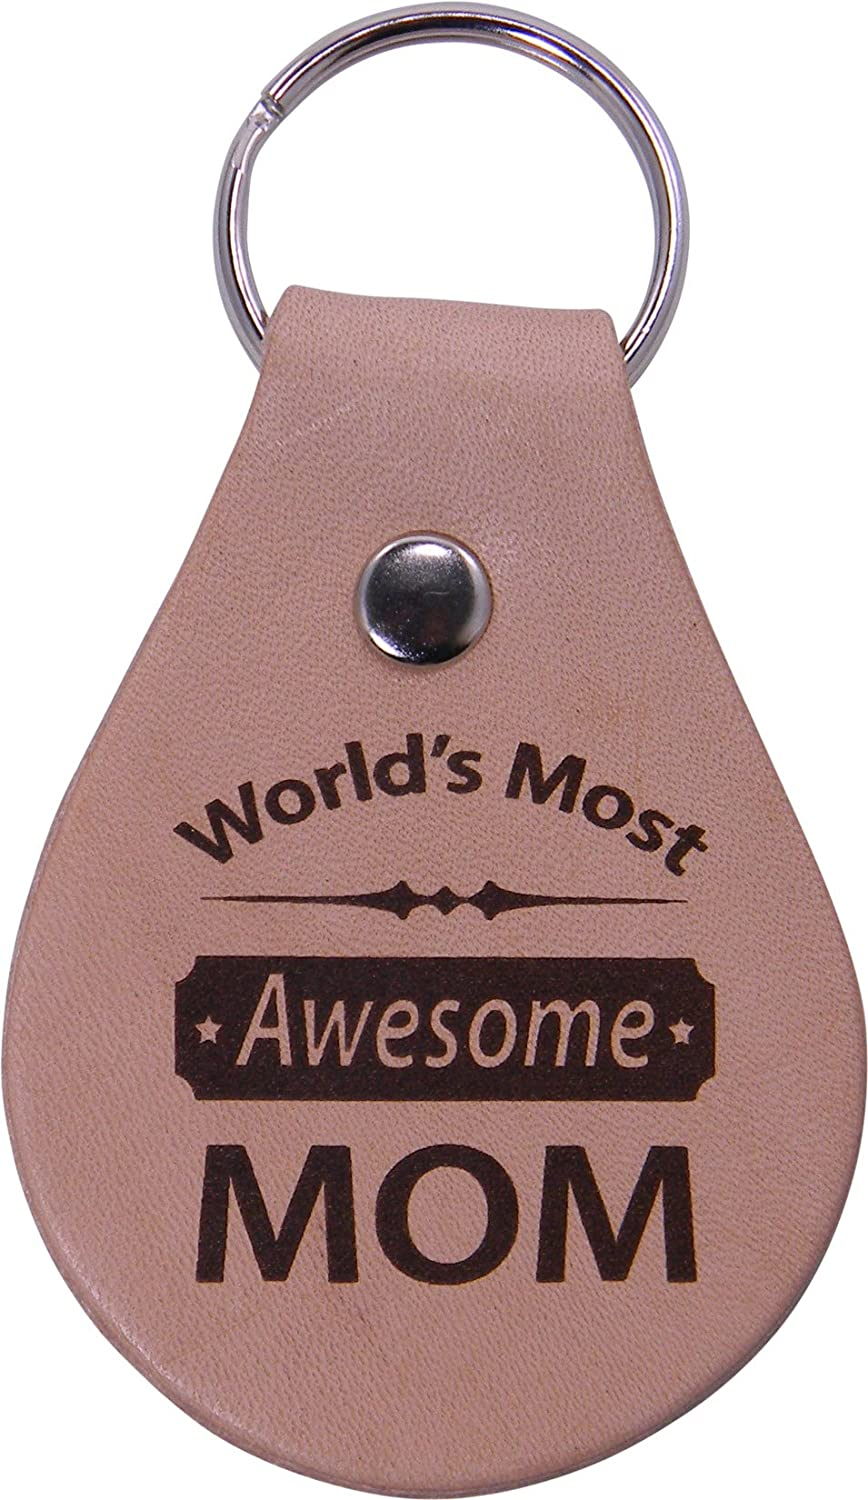 Great Gift for Motherss Day Birthday or for Mom Grandma Wife CustomGiftsNow 1501-WMMOM Worlds Most Awesome Mom Leather Key Chain